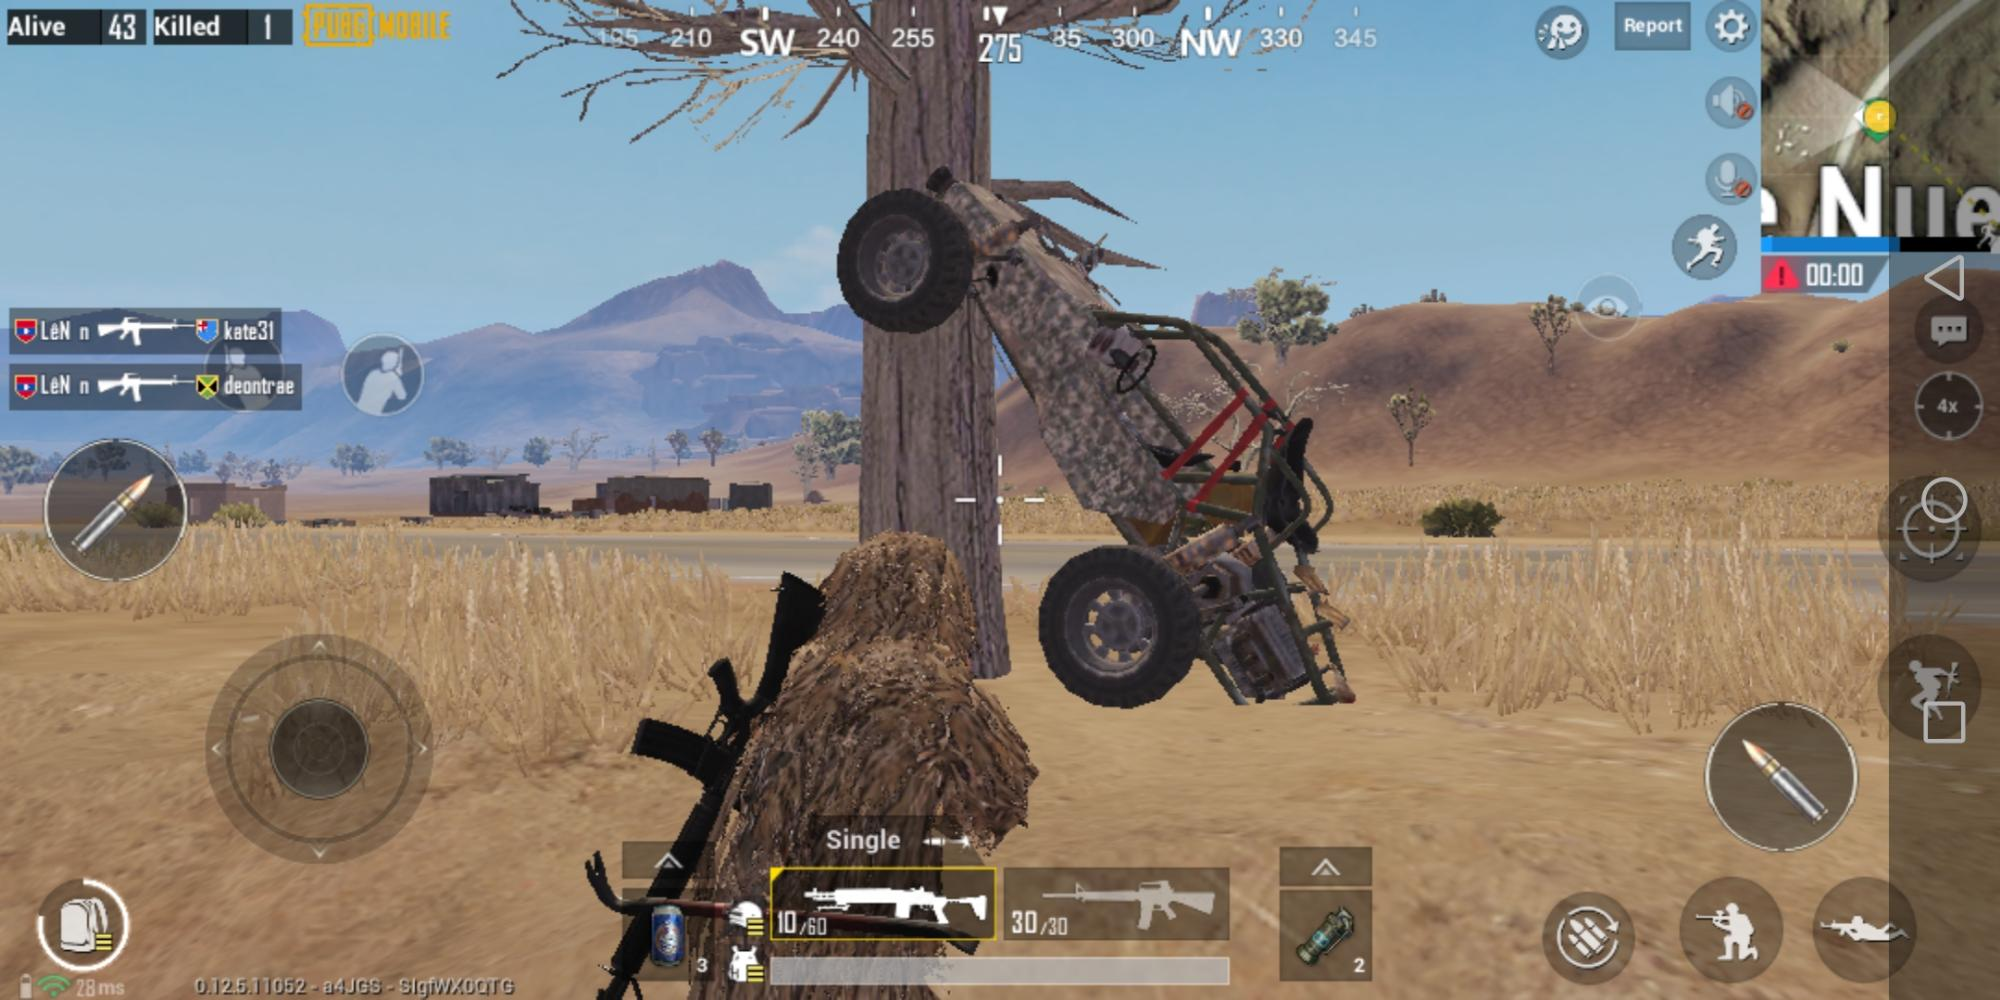 This is Why I don't play Miramar that much